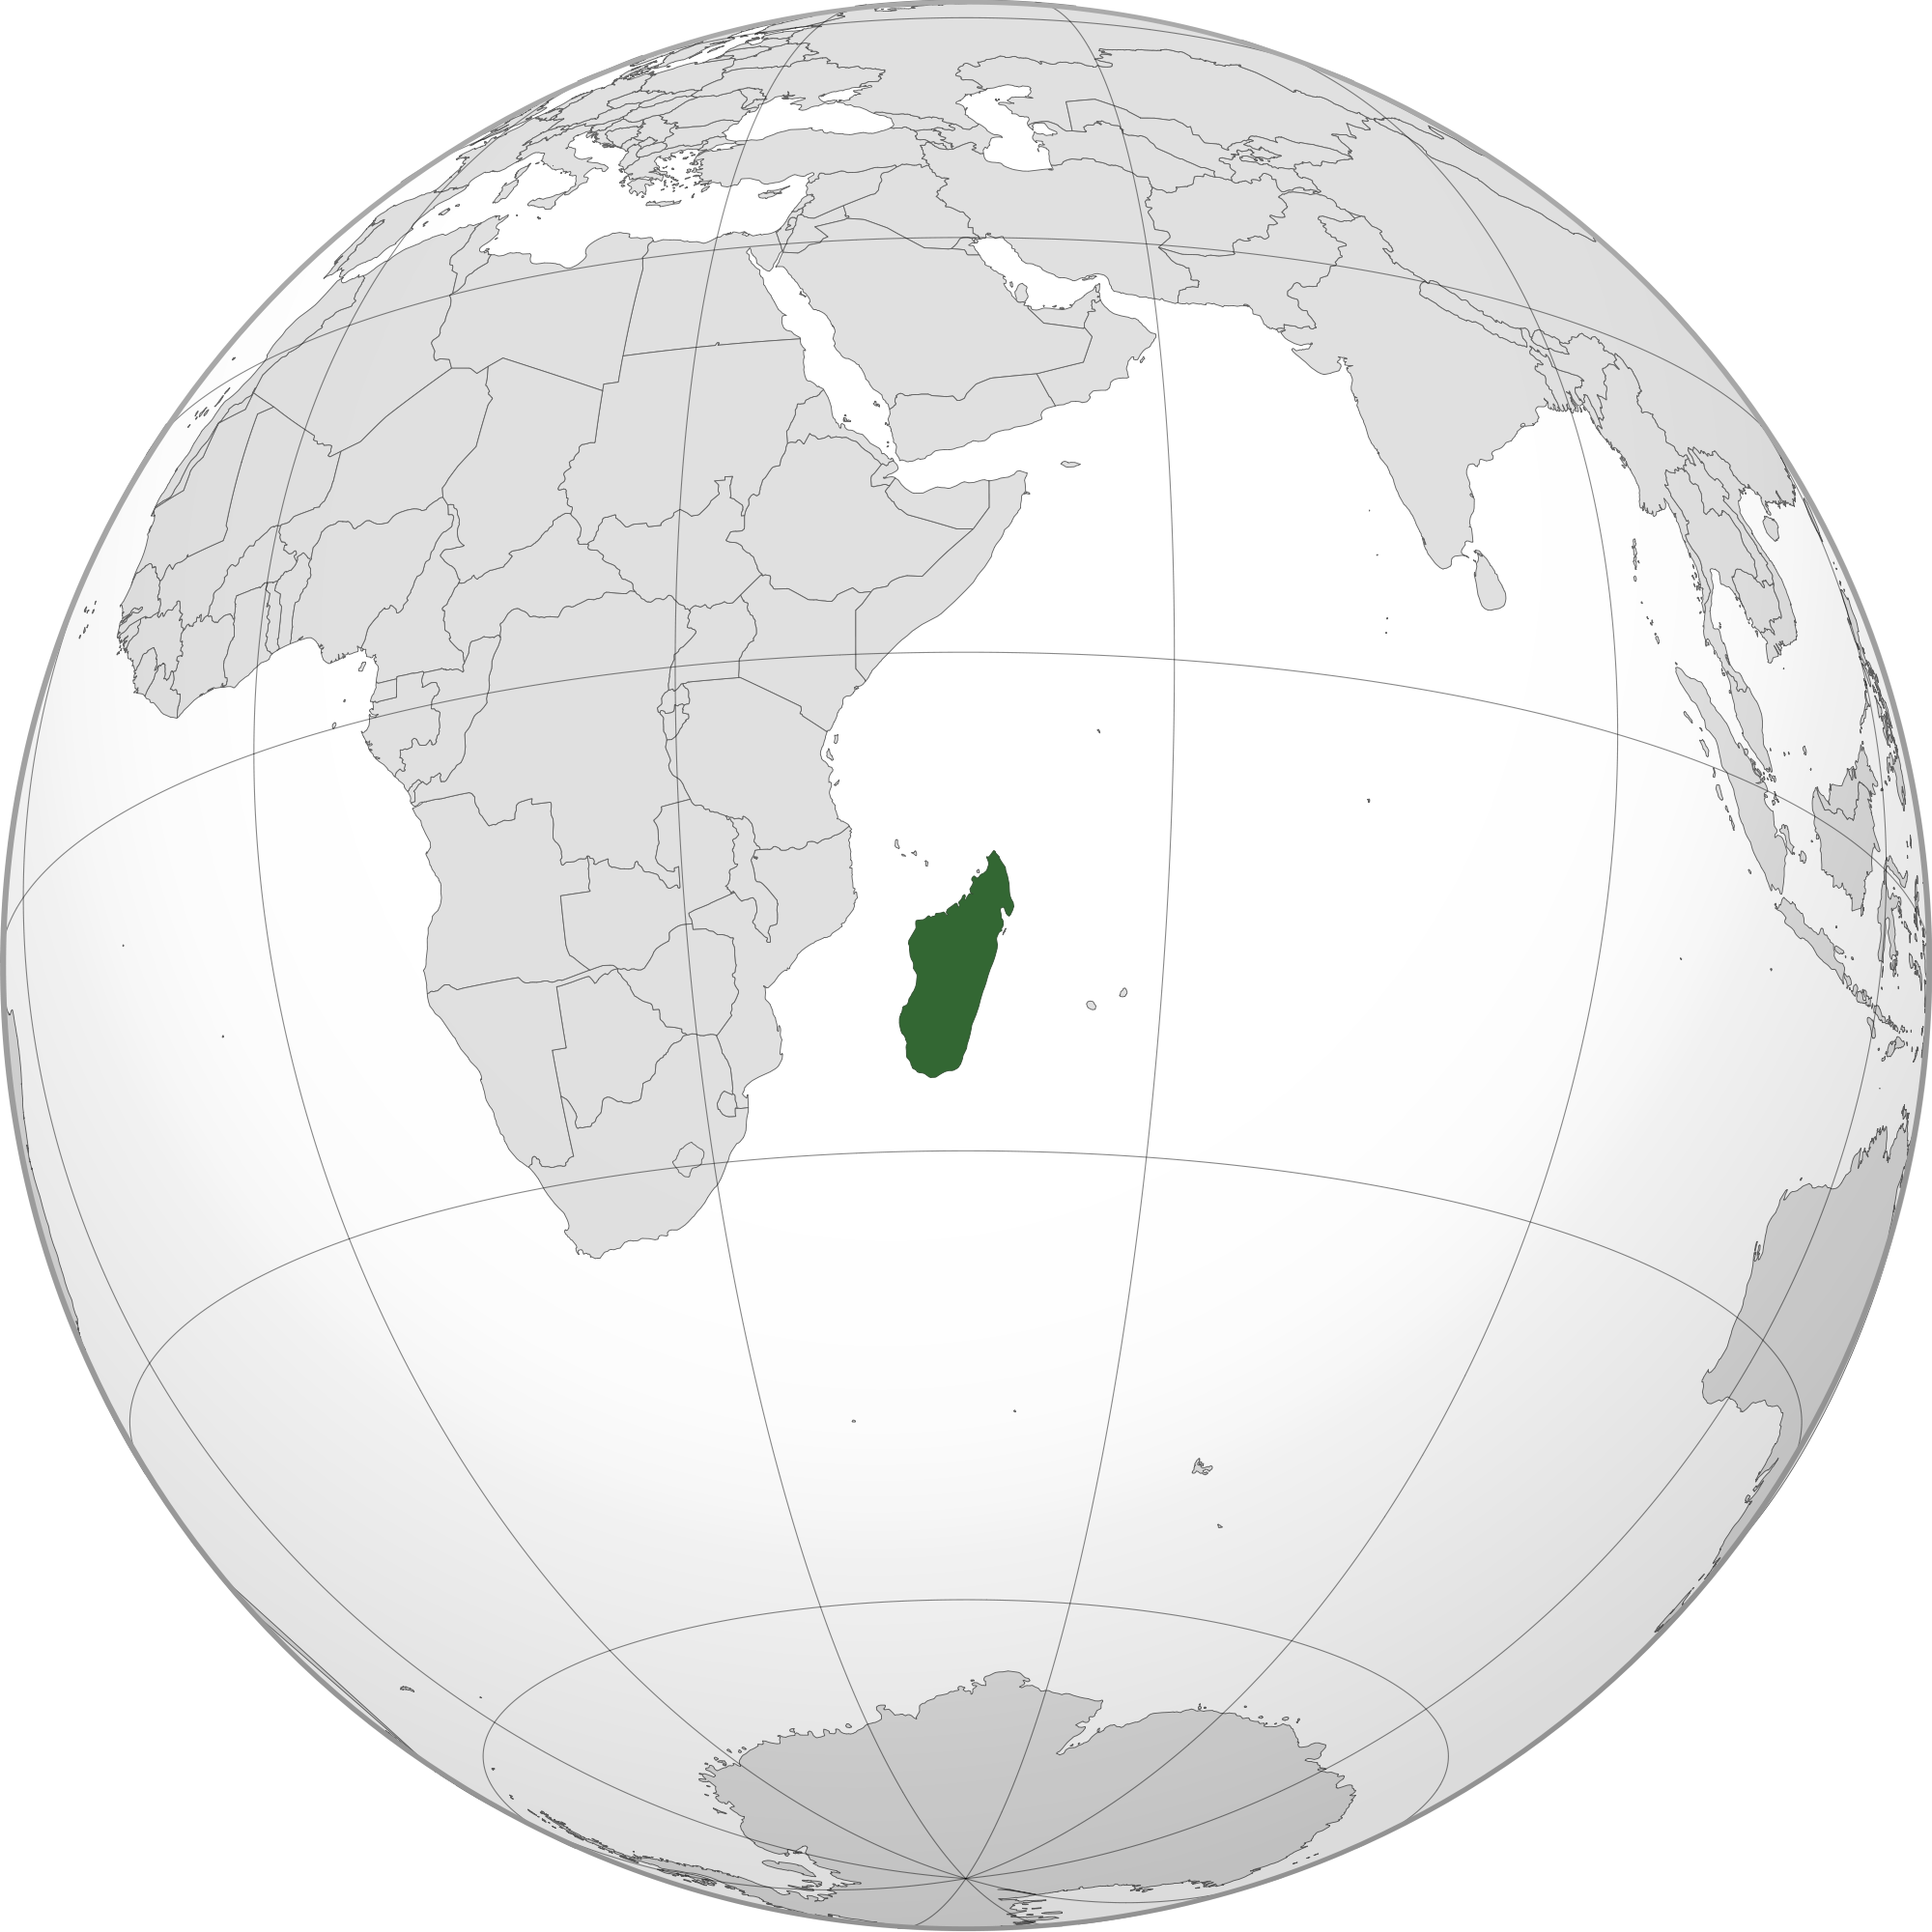 Location of the Madagascar in the World Map